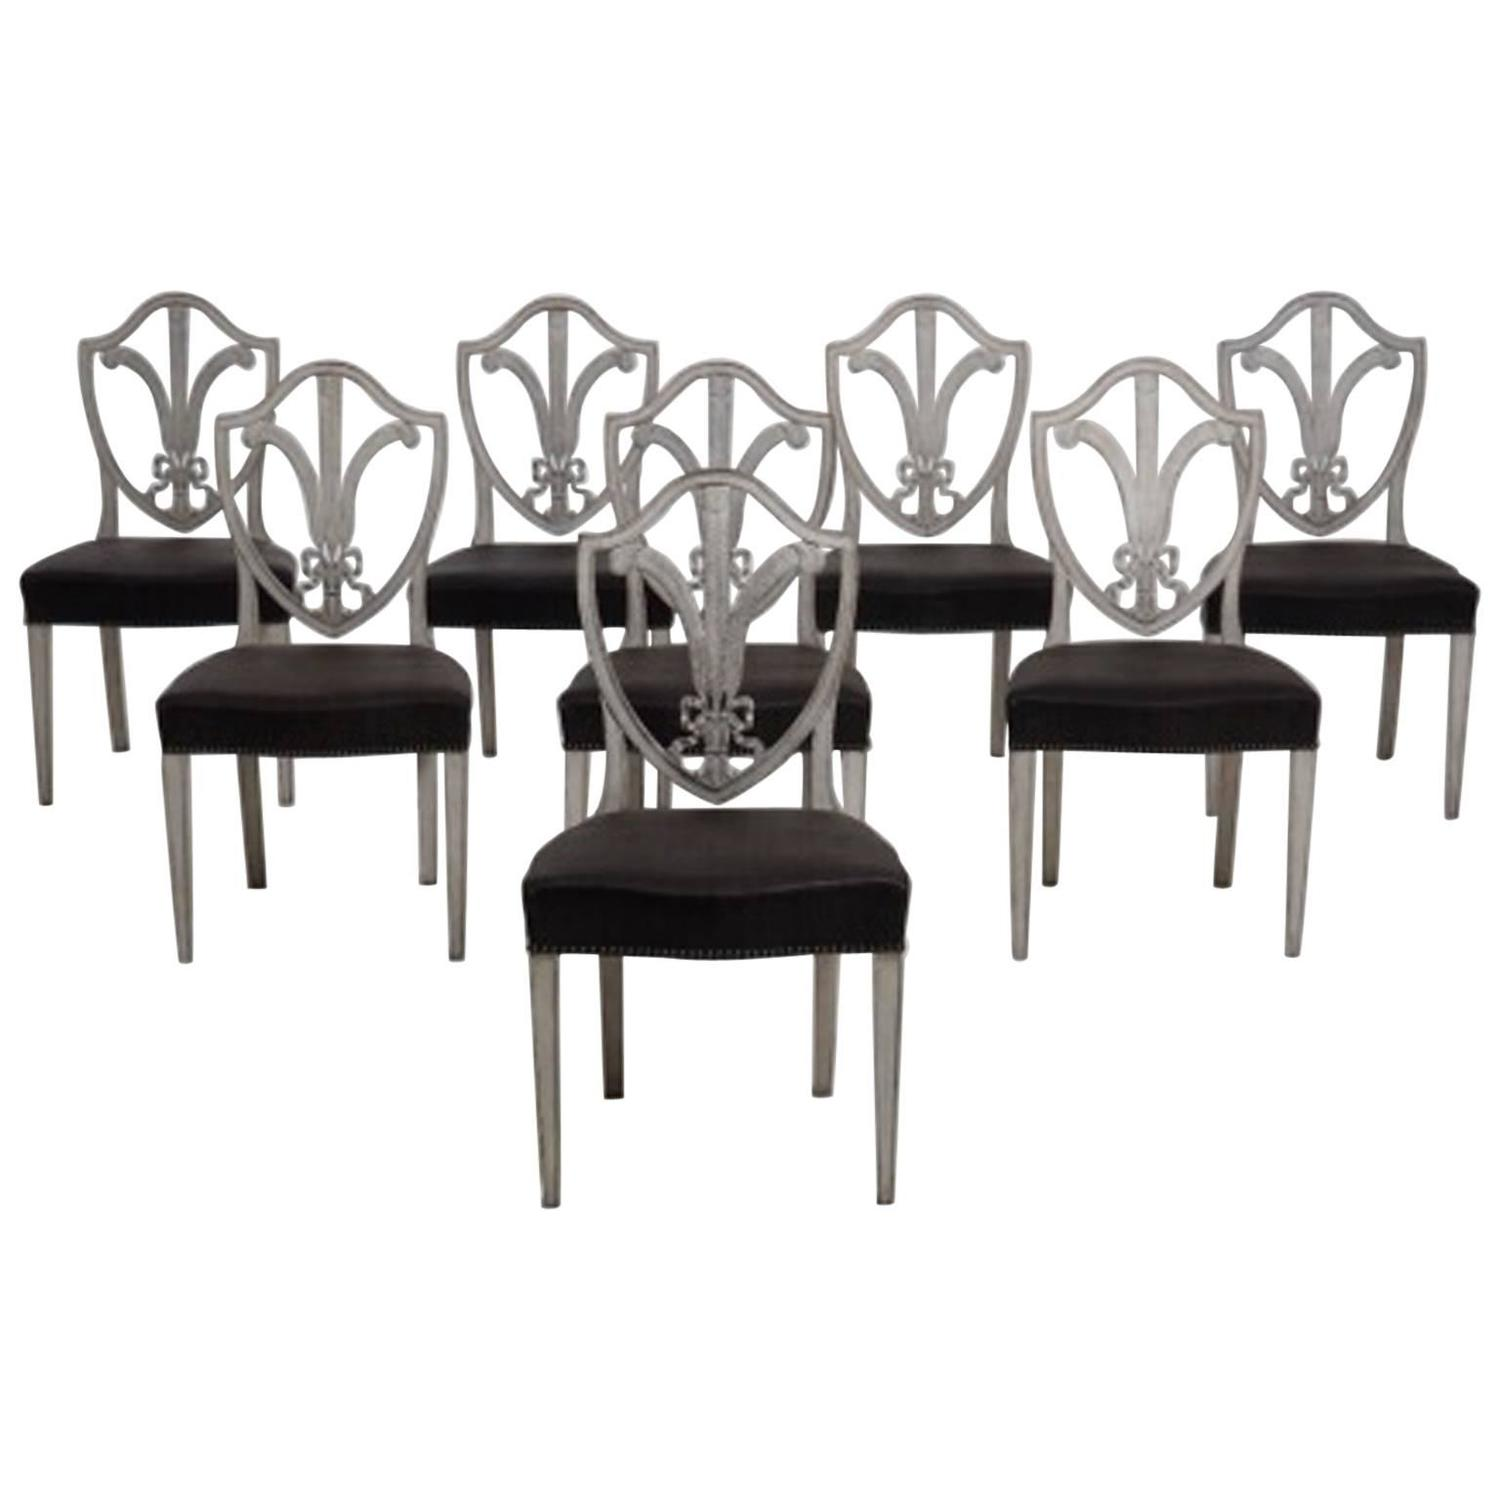 19th century eight swedish gustavian style dining chairs for Swedish style dining chairs